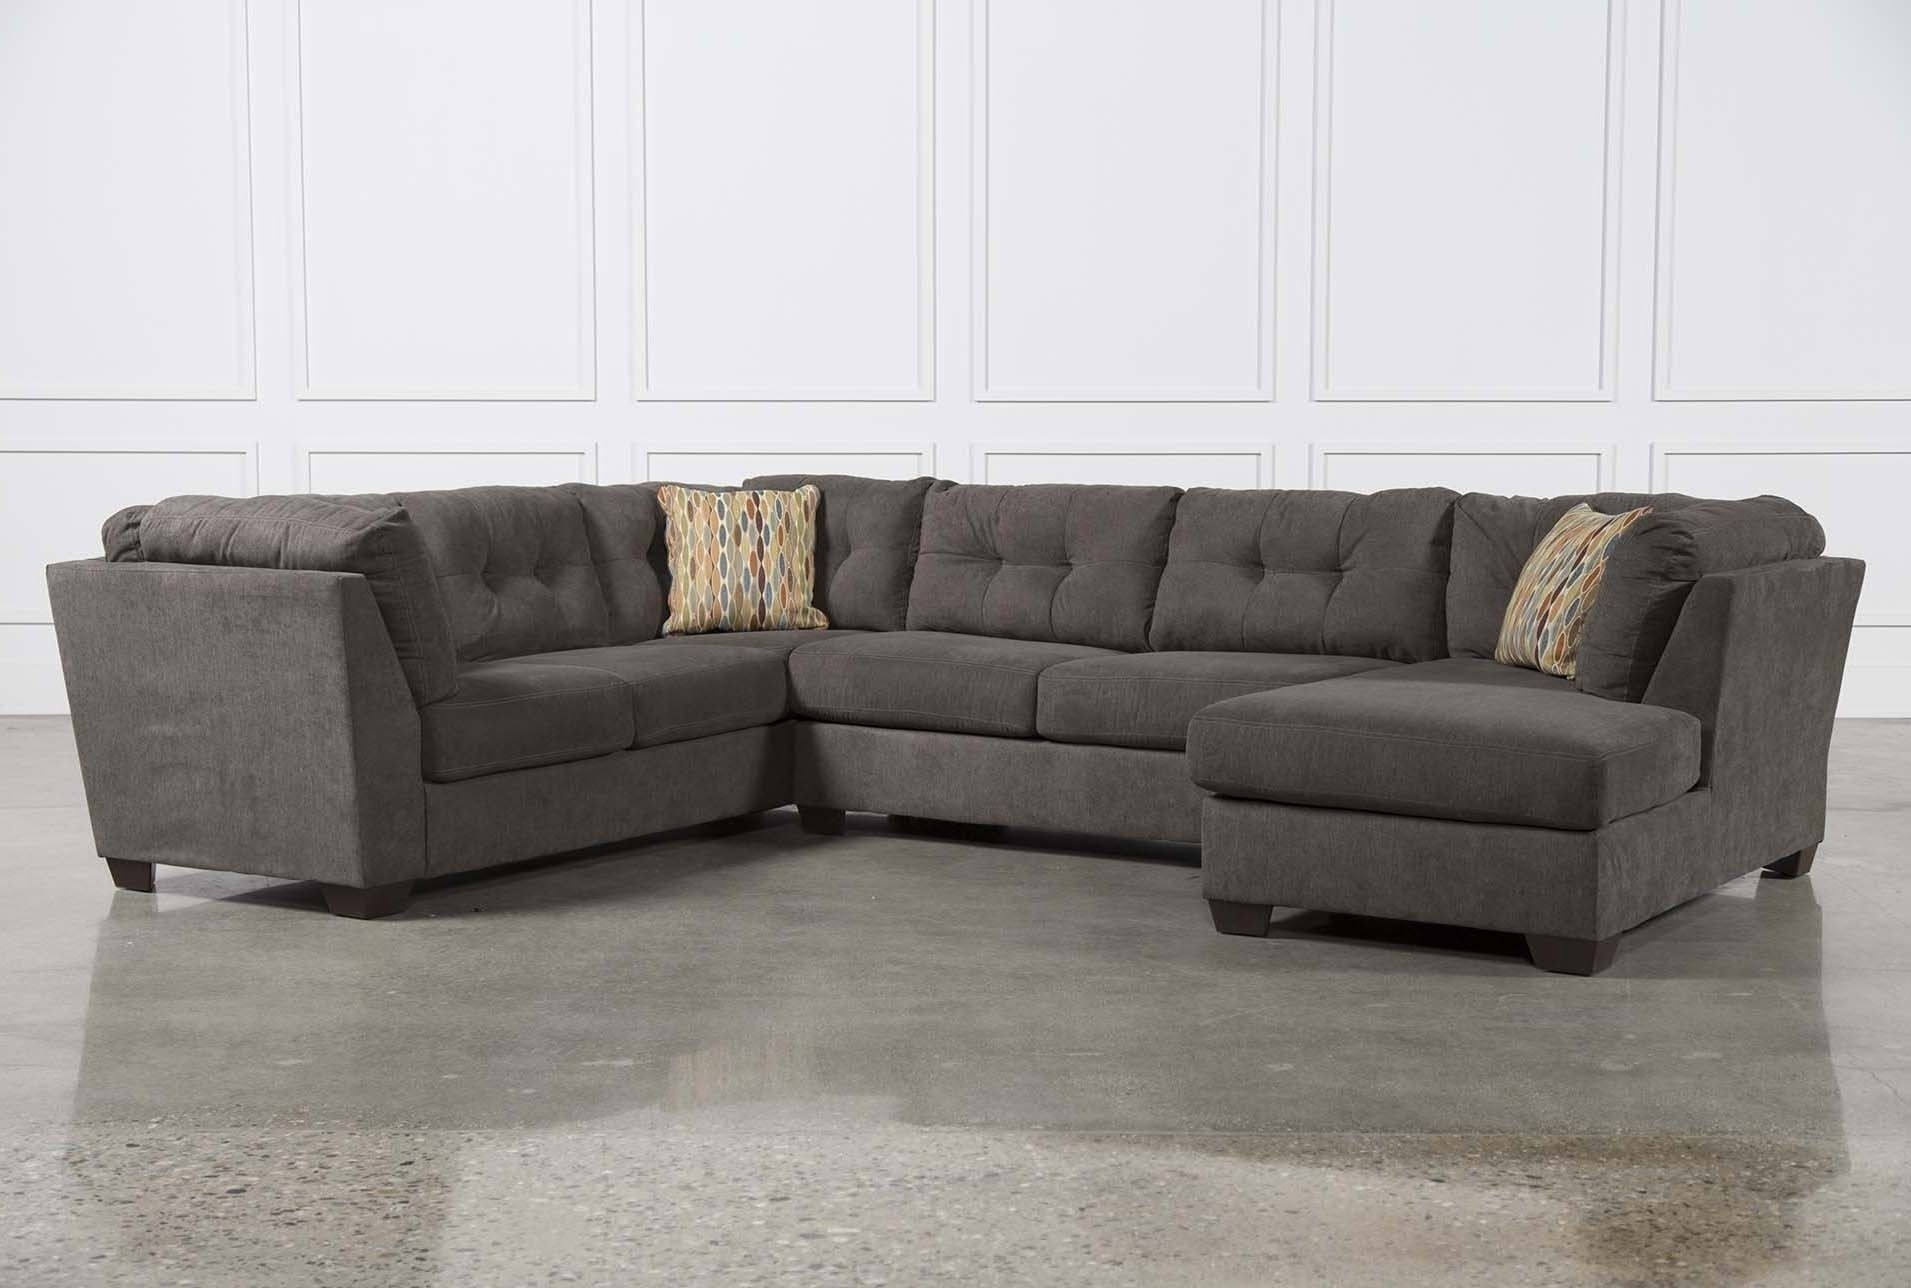 3 Piece Sectional Sleeper Sofas | Sleeper Sofas For Mcdade Graphite 2 Piece Sectionals With Raf Chaise (Photo 5 of 25)